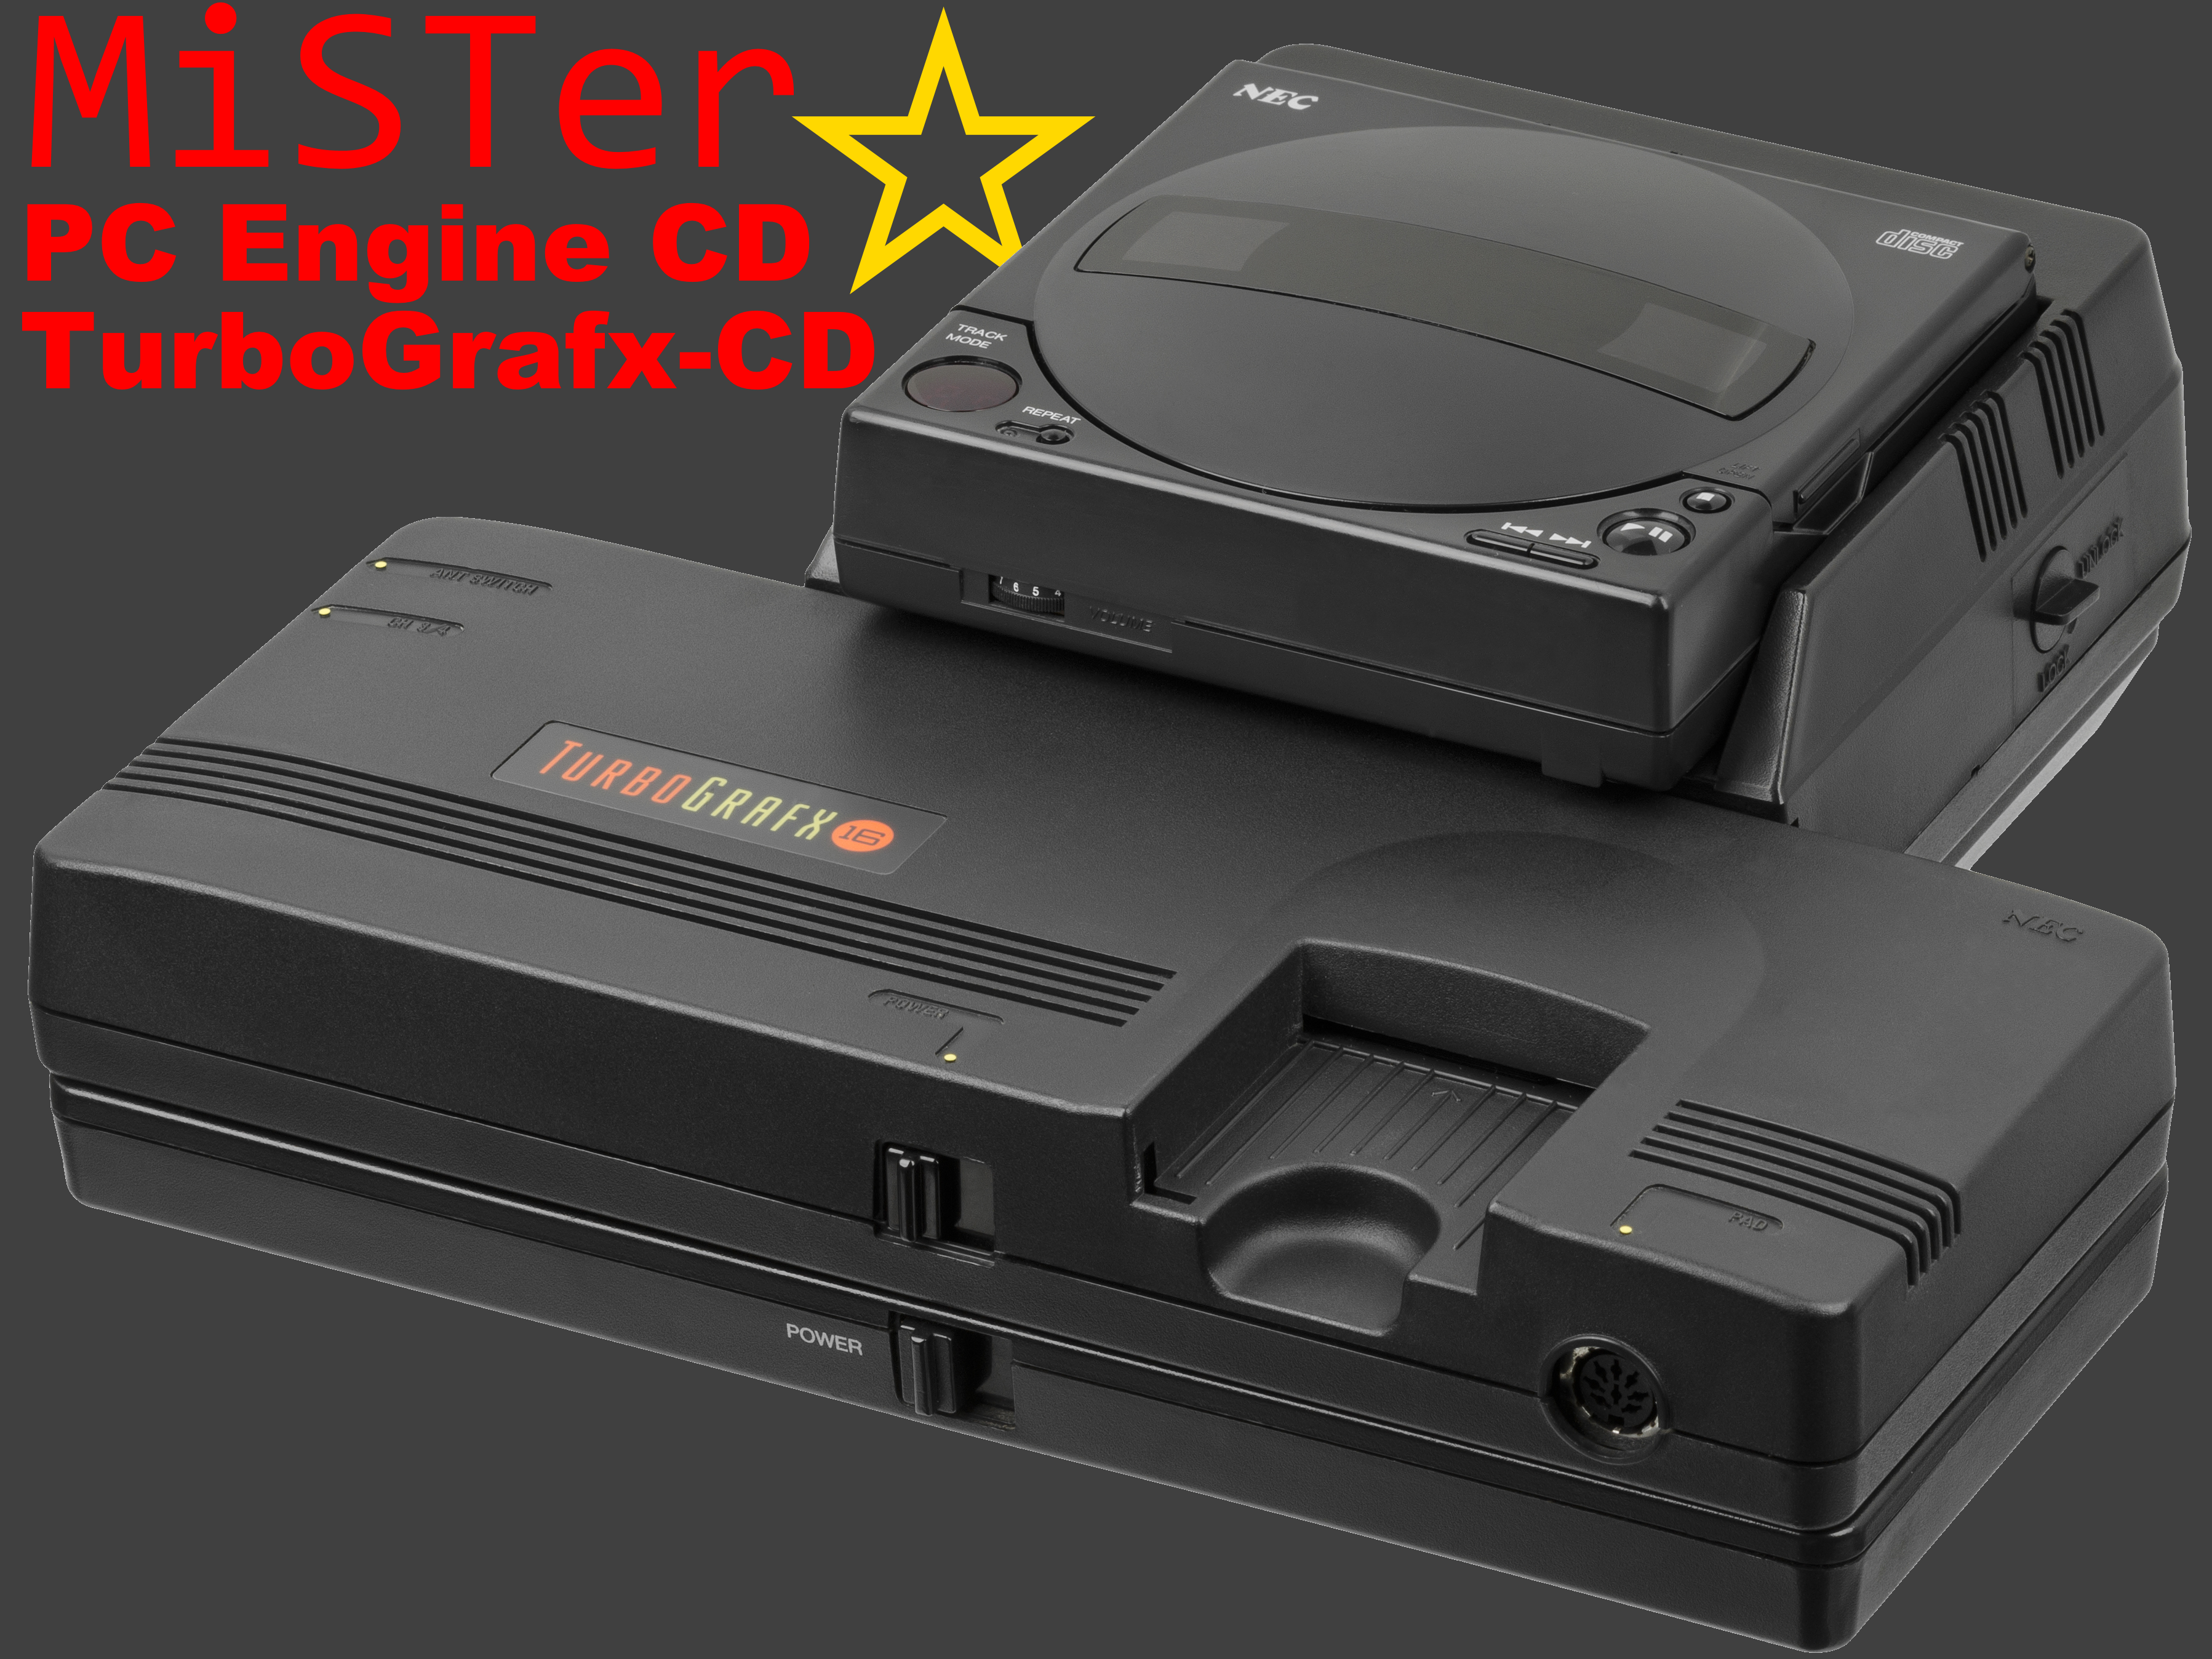 MiSTer PC Engine CD & TurboGrafx-CD Begins